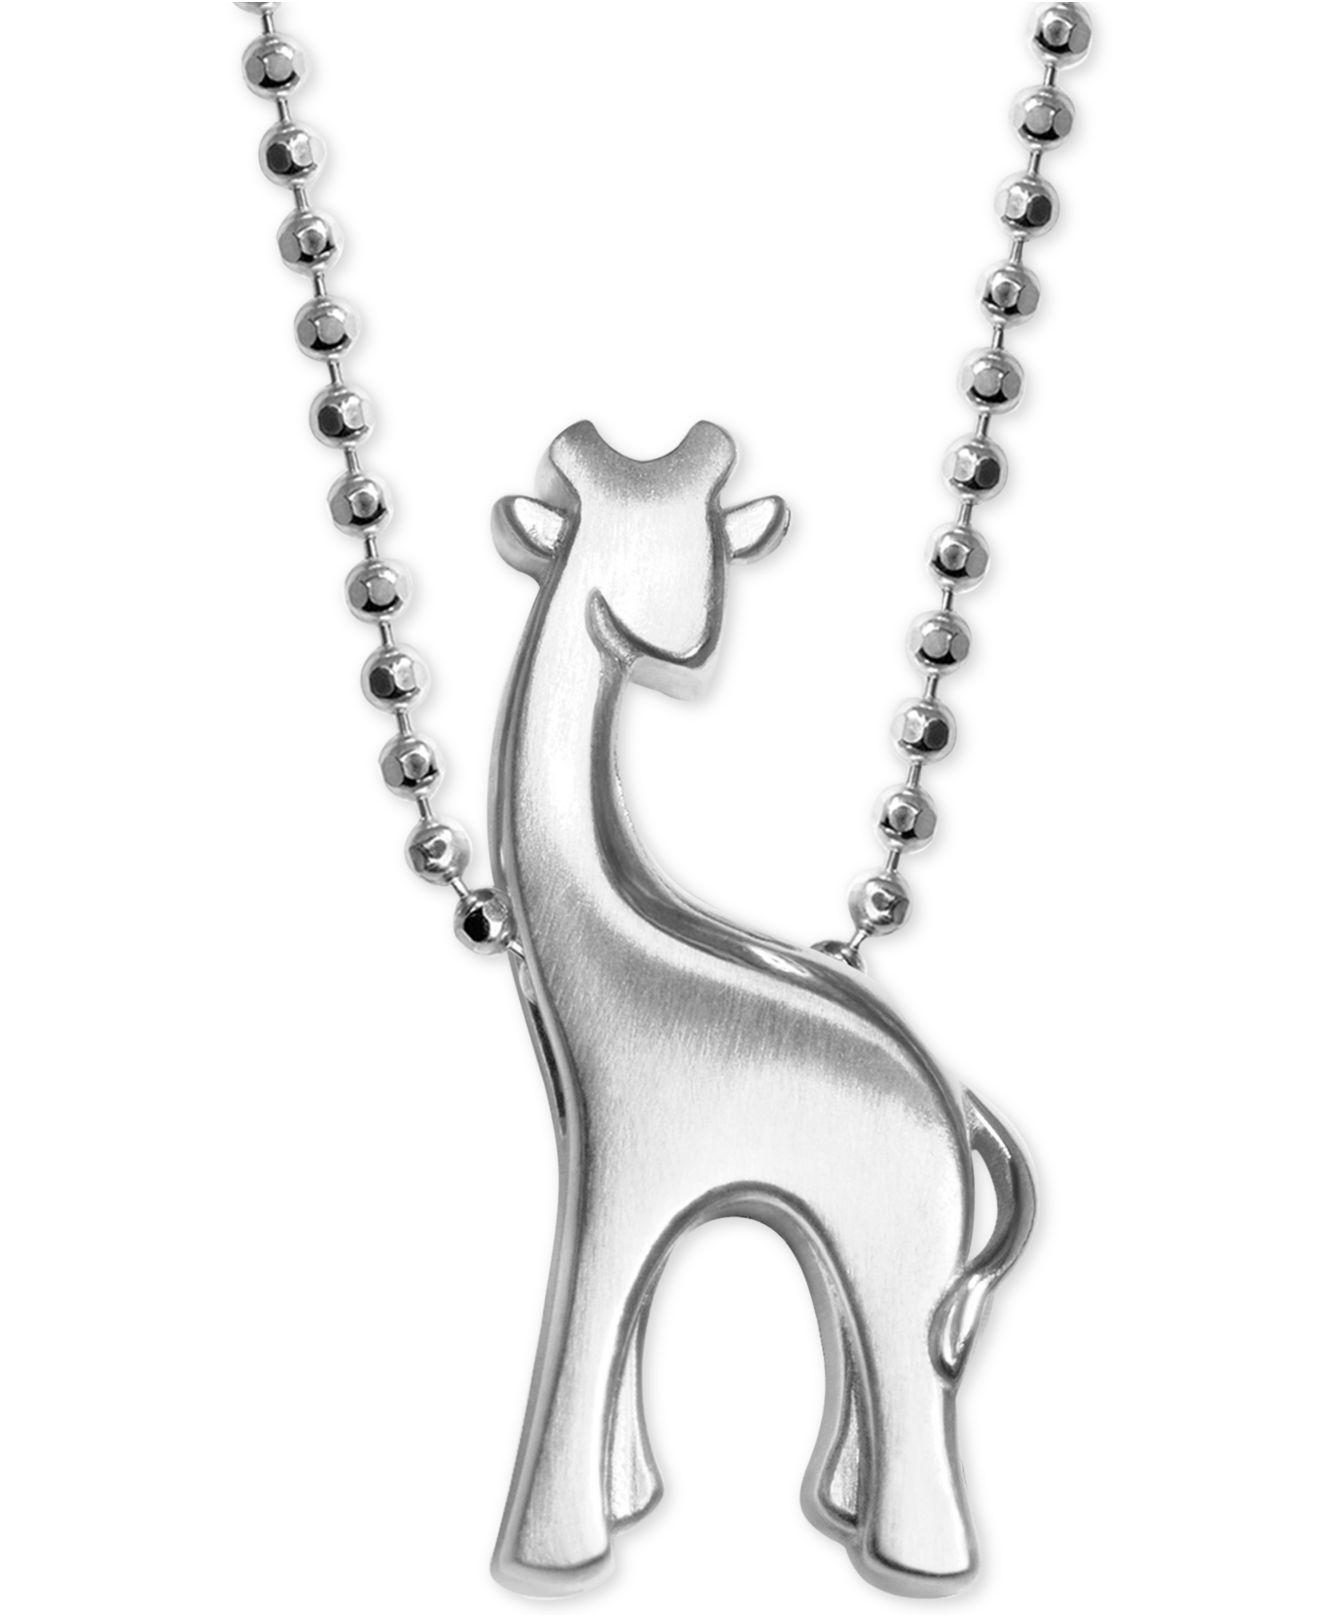 made silver pendant swarovski crystals sharpen prd hei elements necklace with product wid artistique over op gold crystal jsp giraffe